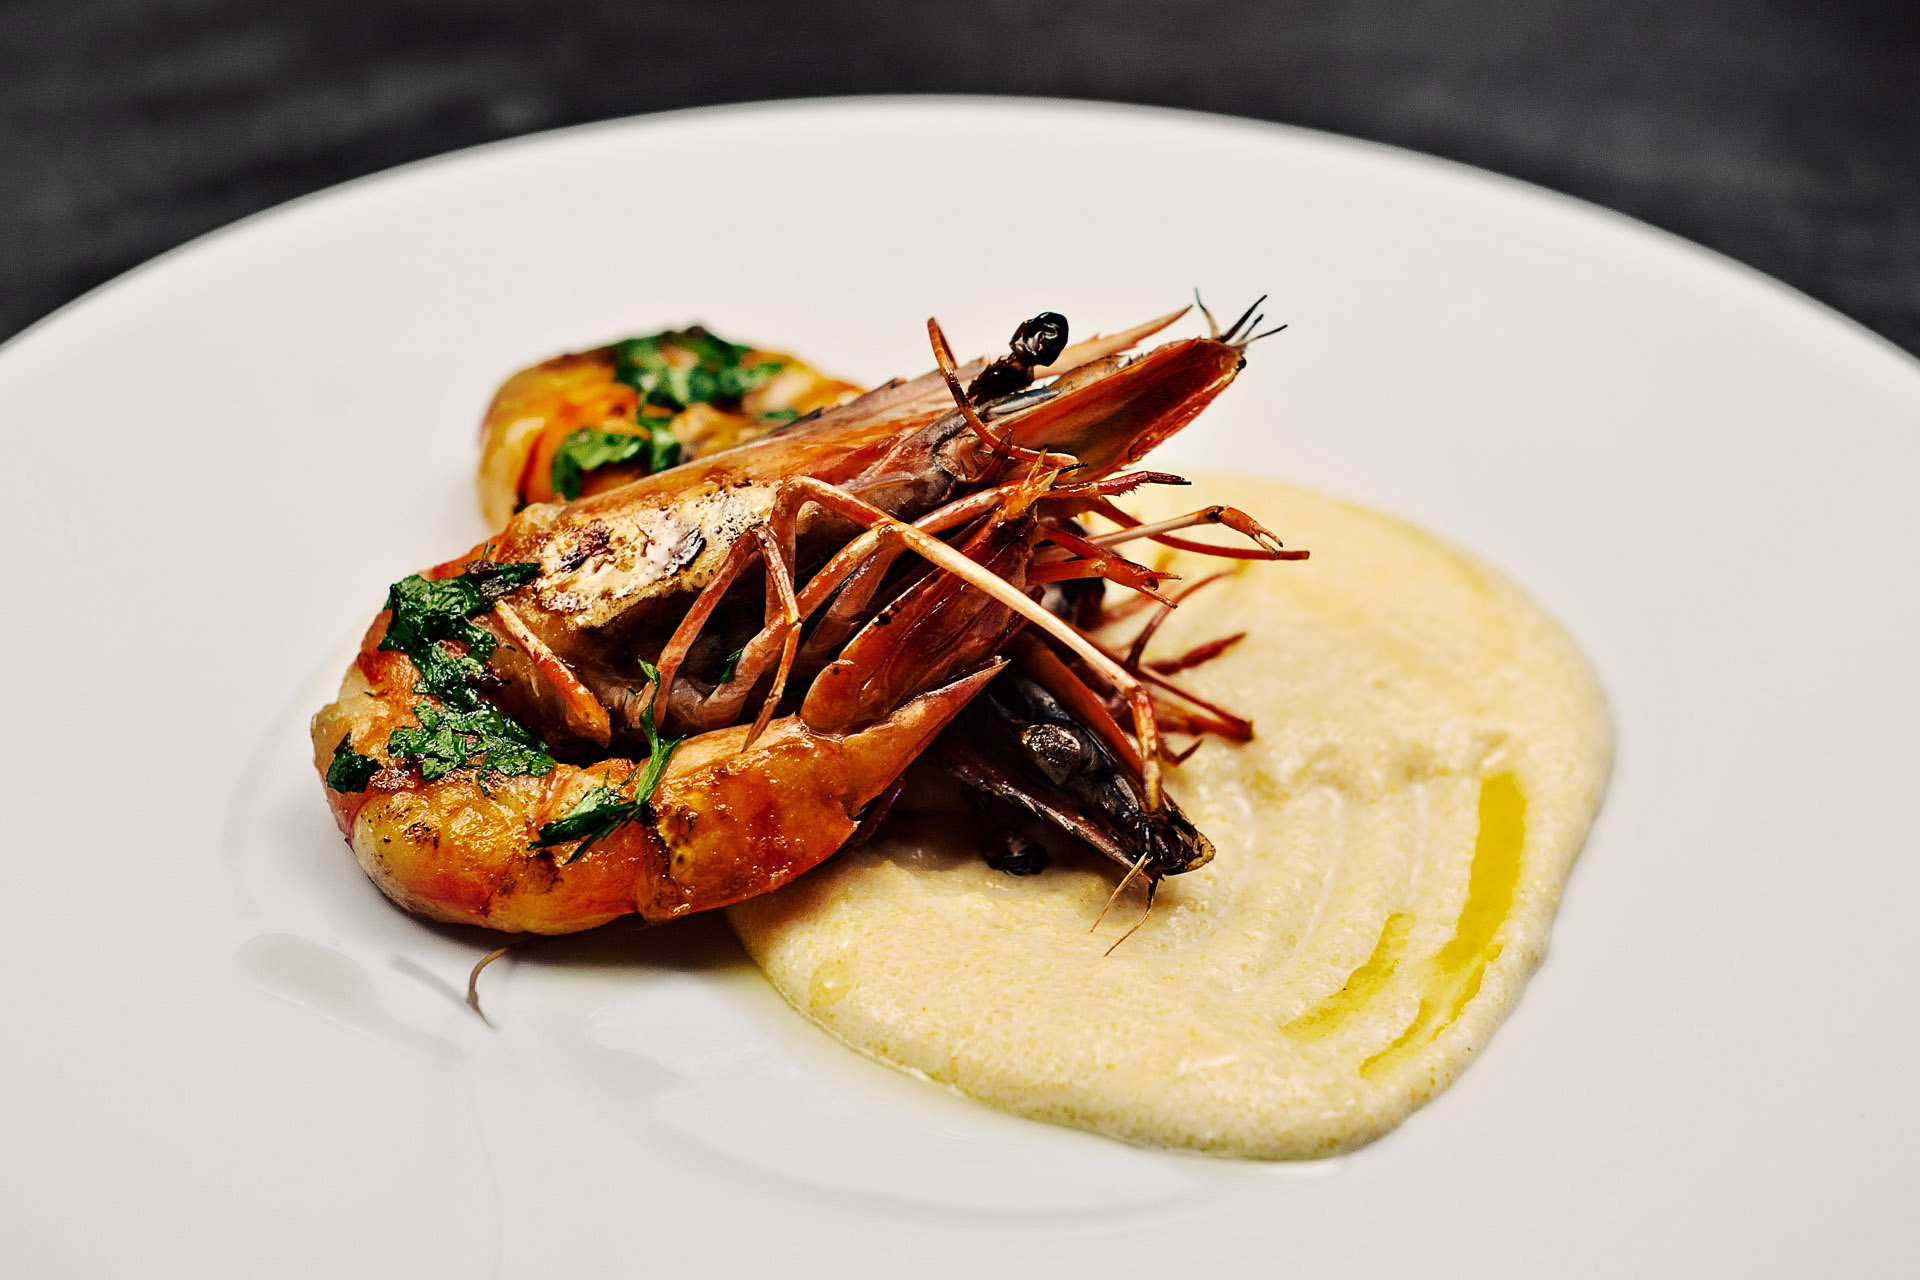 Food pictures Tiger shrimps with smashed potatoes